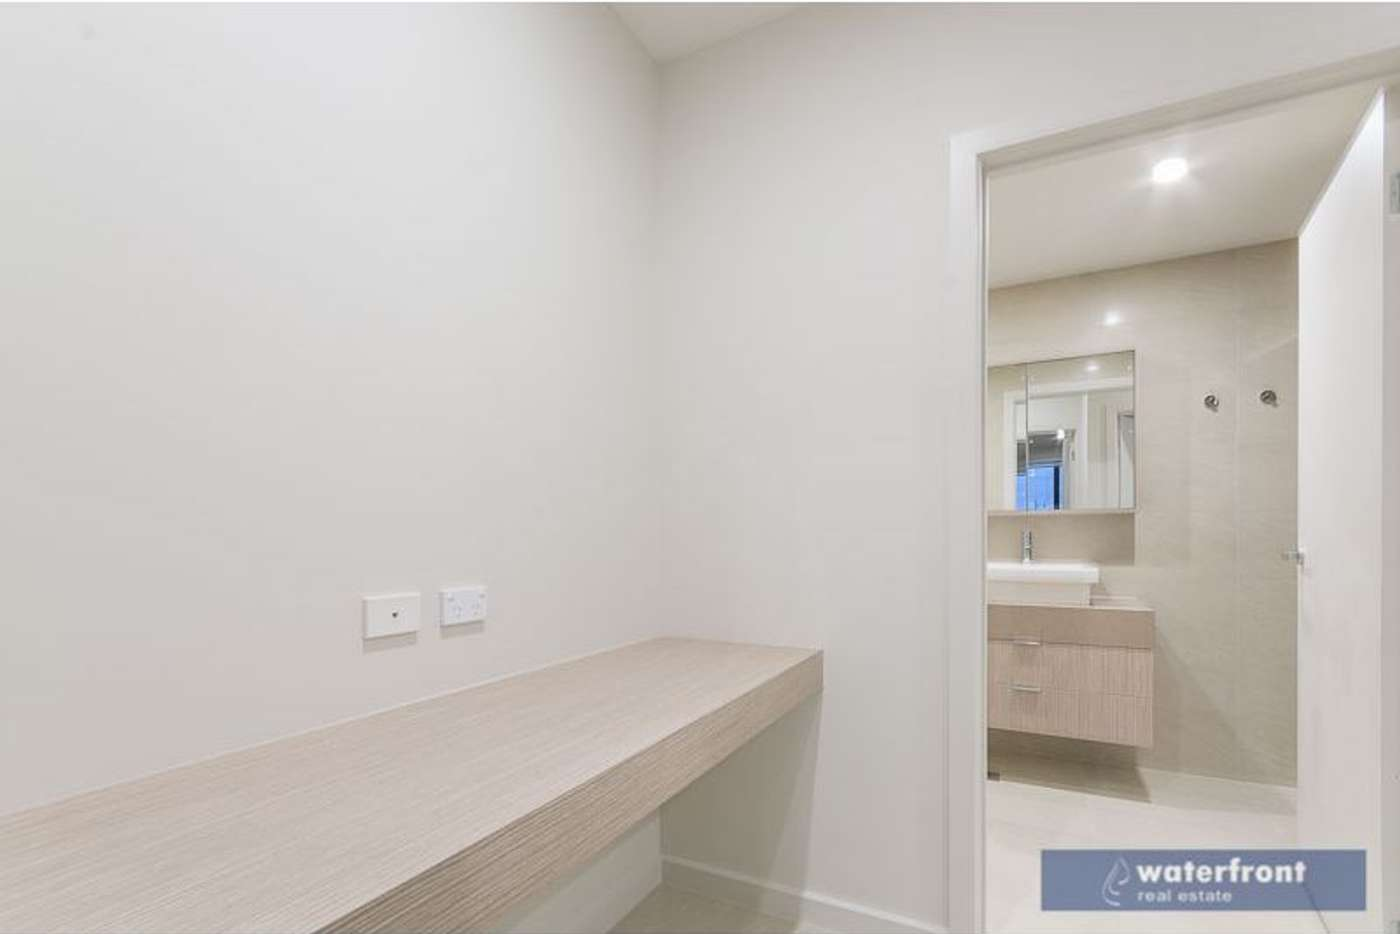 Sixth view of Homely apartment listing, 35/10 Monckton Place, Caroline Springs VIC 3023